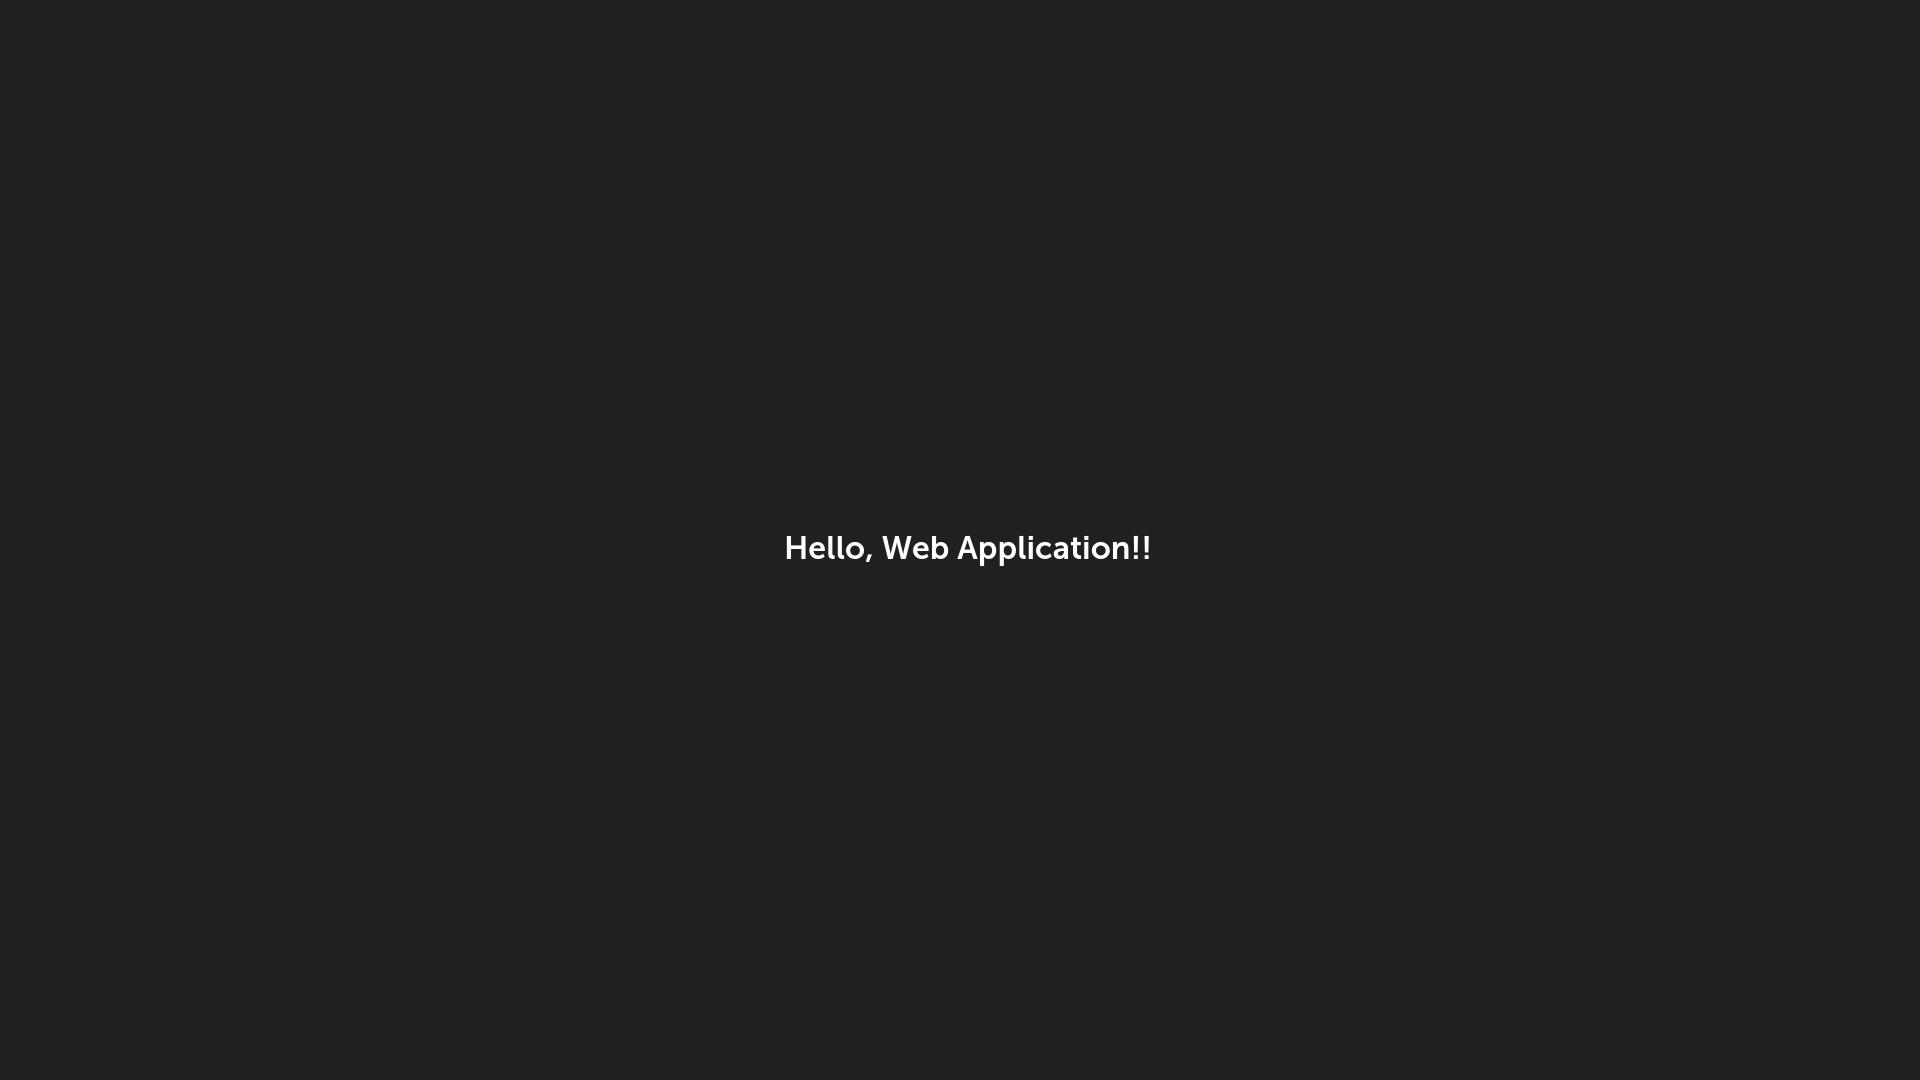 Developing Built-in Web Apps | webOS Open Source Edition